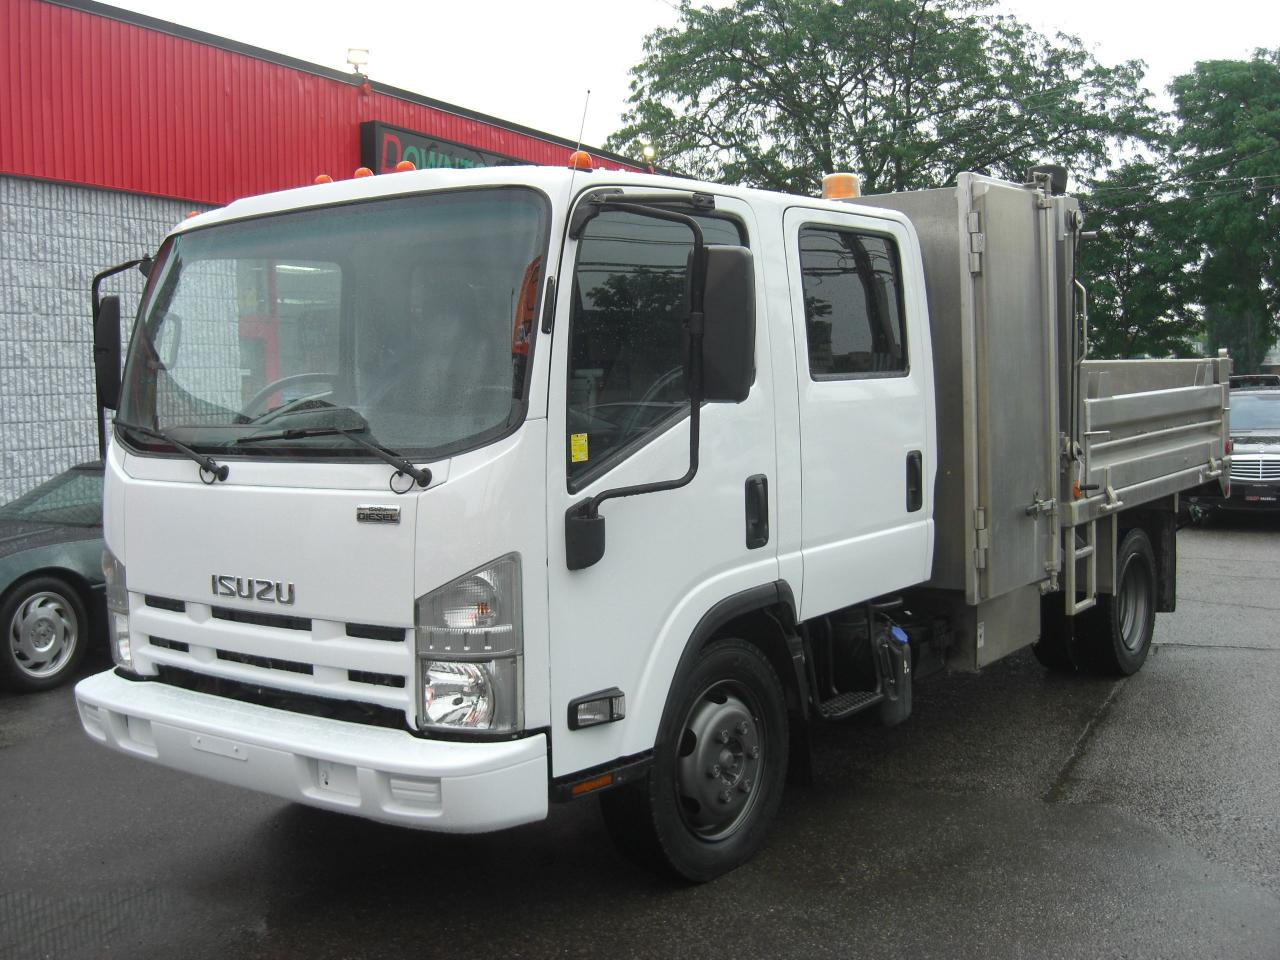 used 2014 isuzu nqr dump truck crew cab dually for sale in london ontario carpages ca [ 1280 x 960 Pixel ]